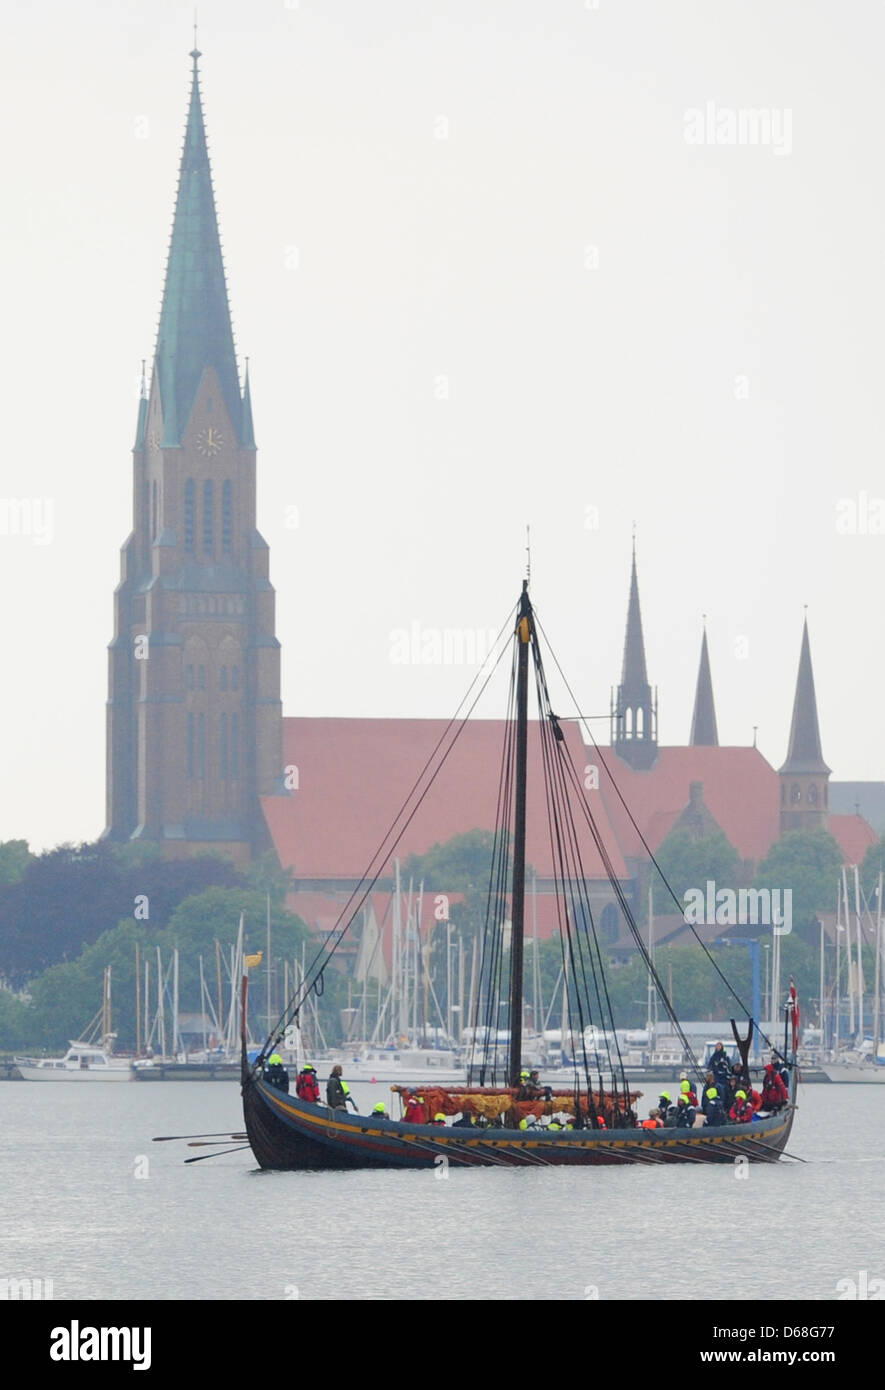 The replica Viking ship 'Havhingten' arrives in Schleswig, Germany, 13 July 2012. The approx. 30 meter long - Stock Image